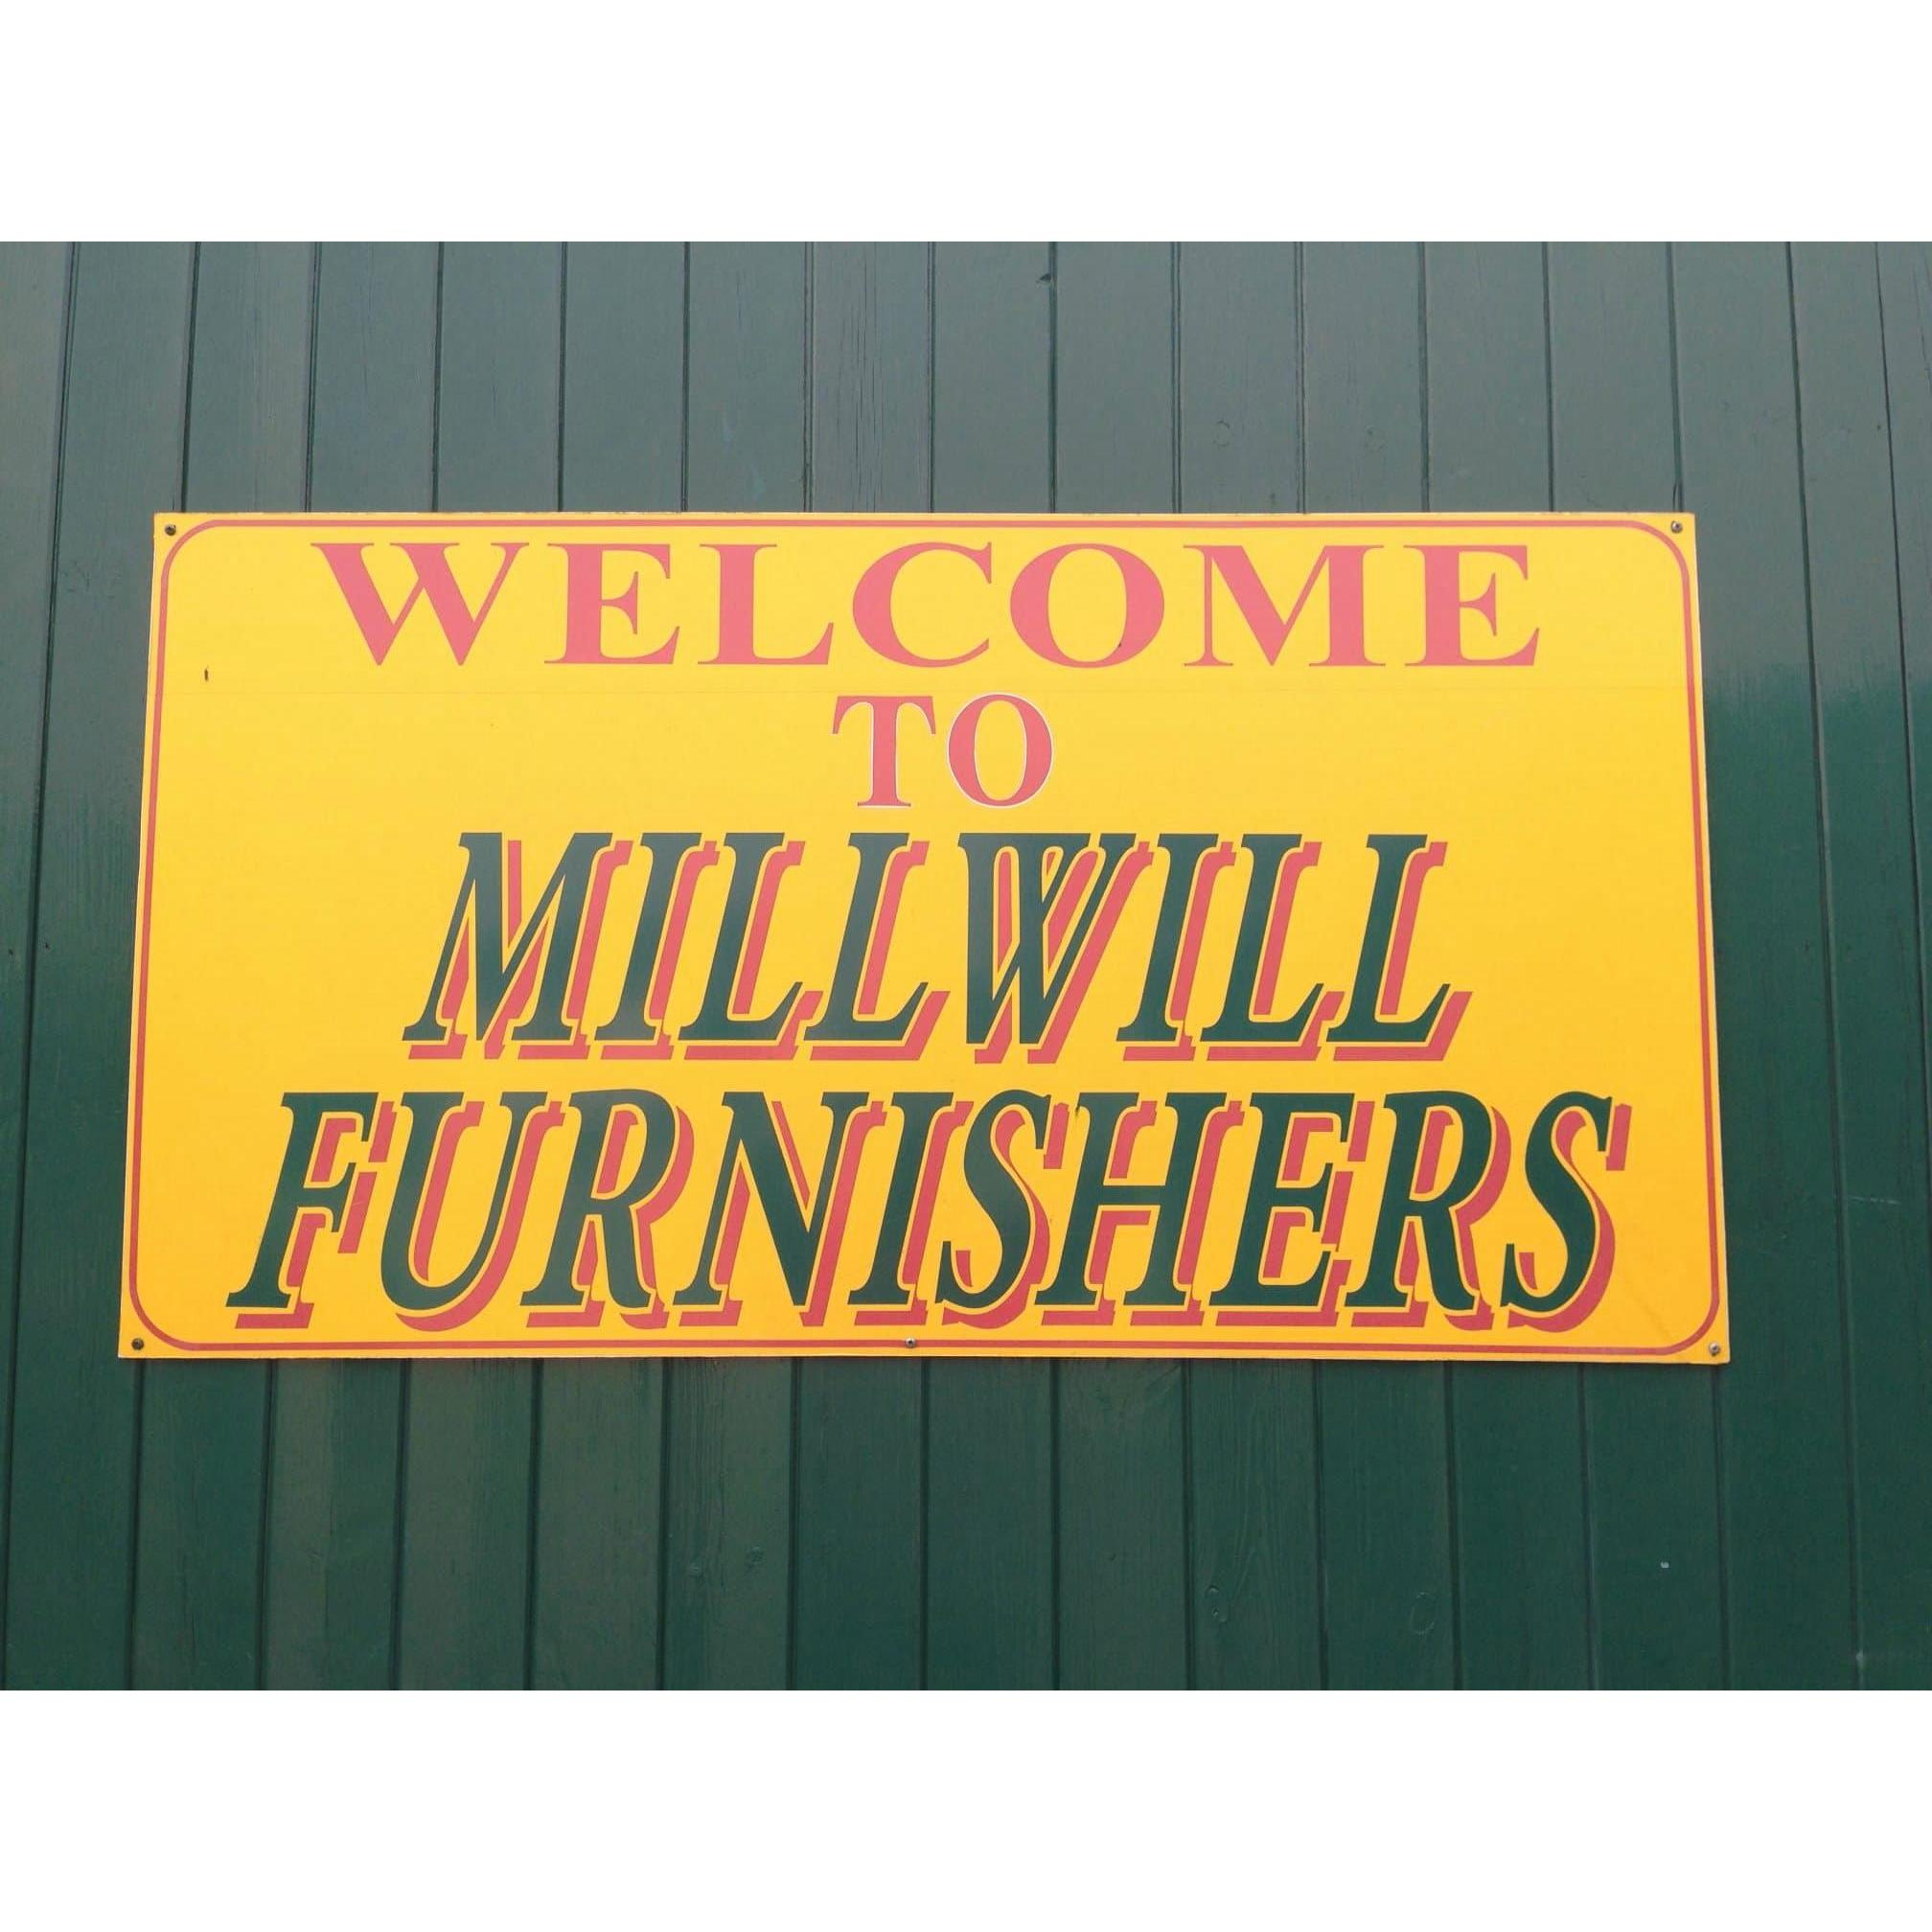 Millwill Furnishers - Peterborough, Cambridgeshire PE1 2EU - 01733 553565 | ShowMeLocal.com